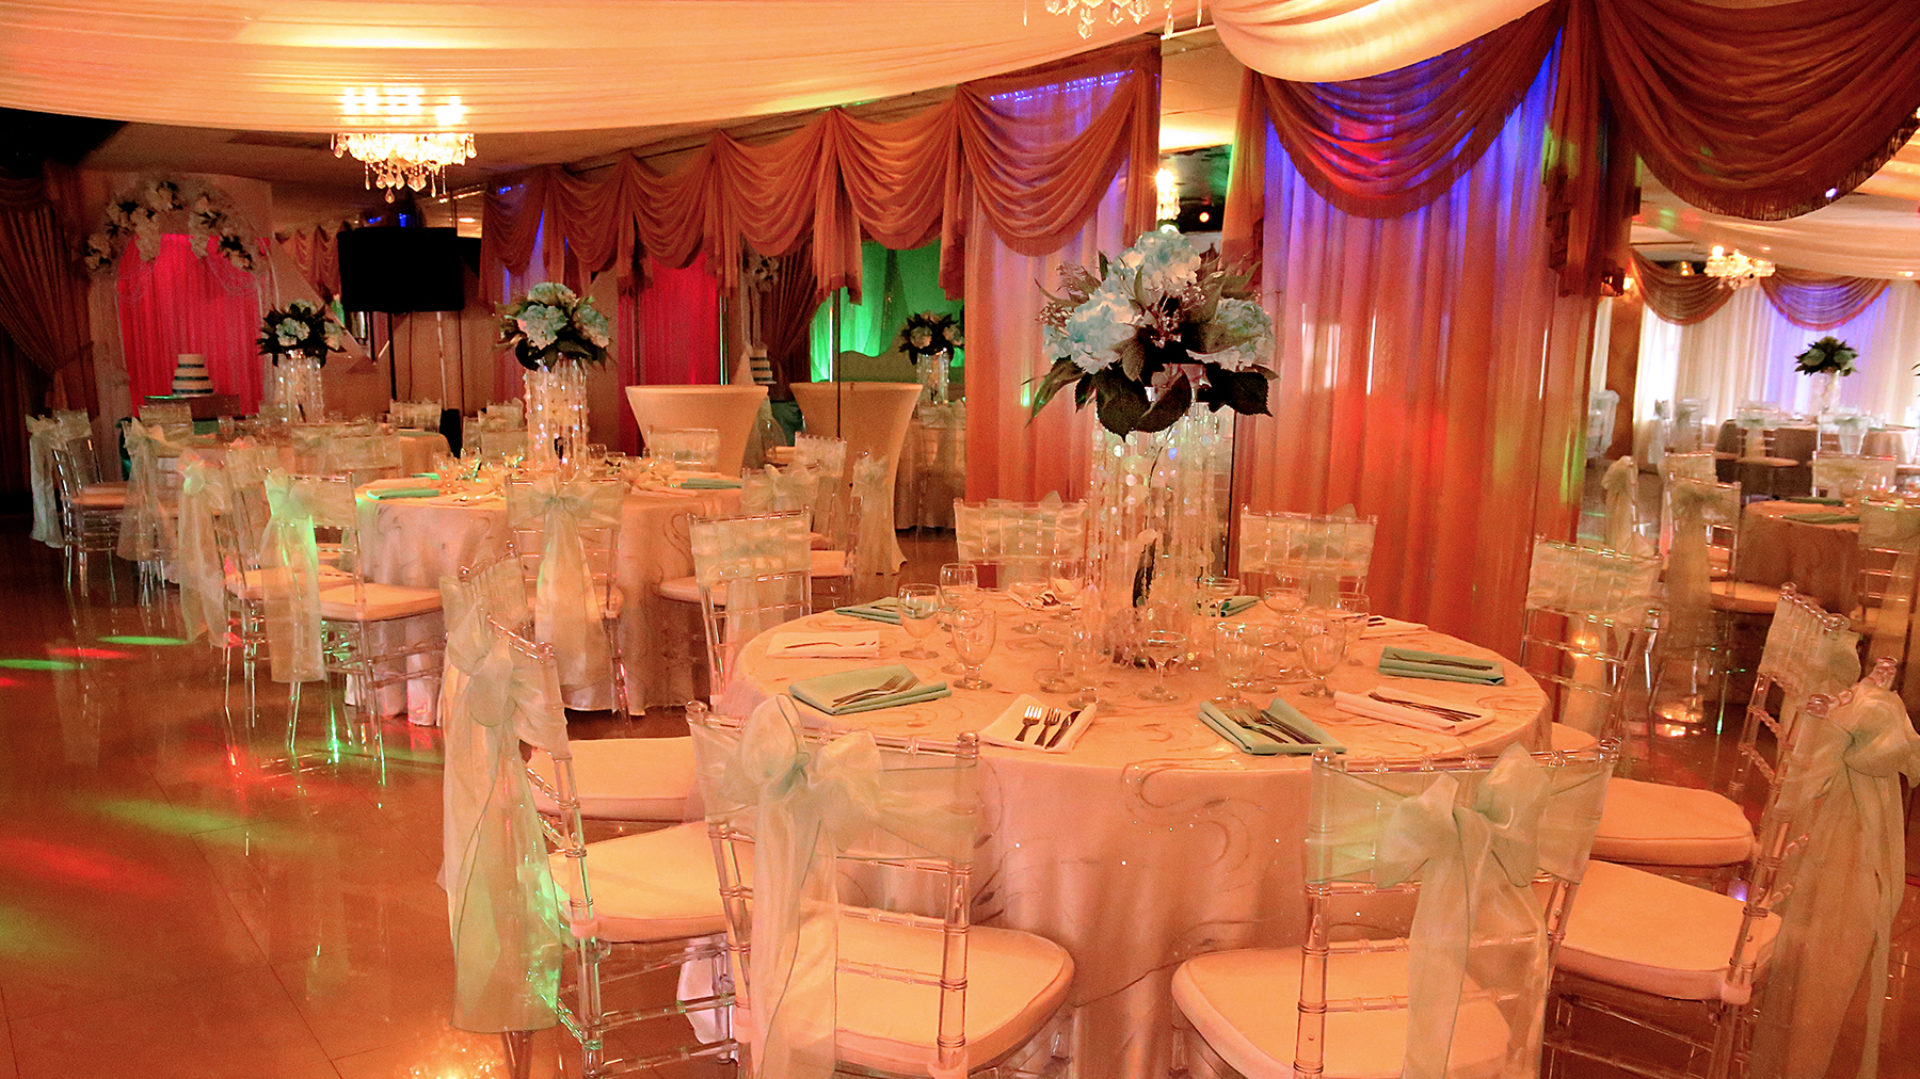 Ensueño Banquet Hall Hialeah | Hialeah Banquet Hall | Wedding Venue Hialeah